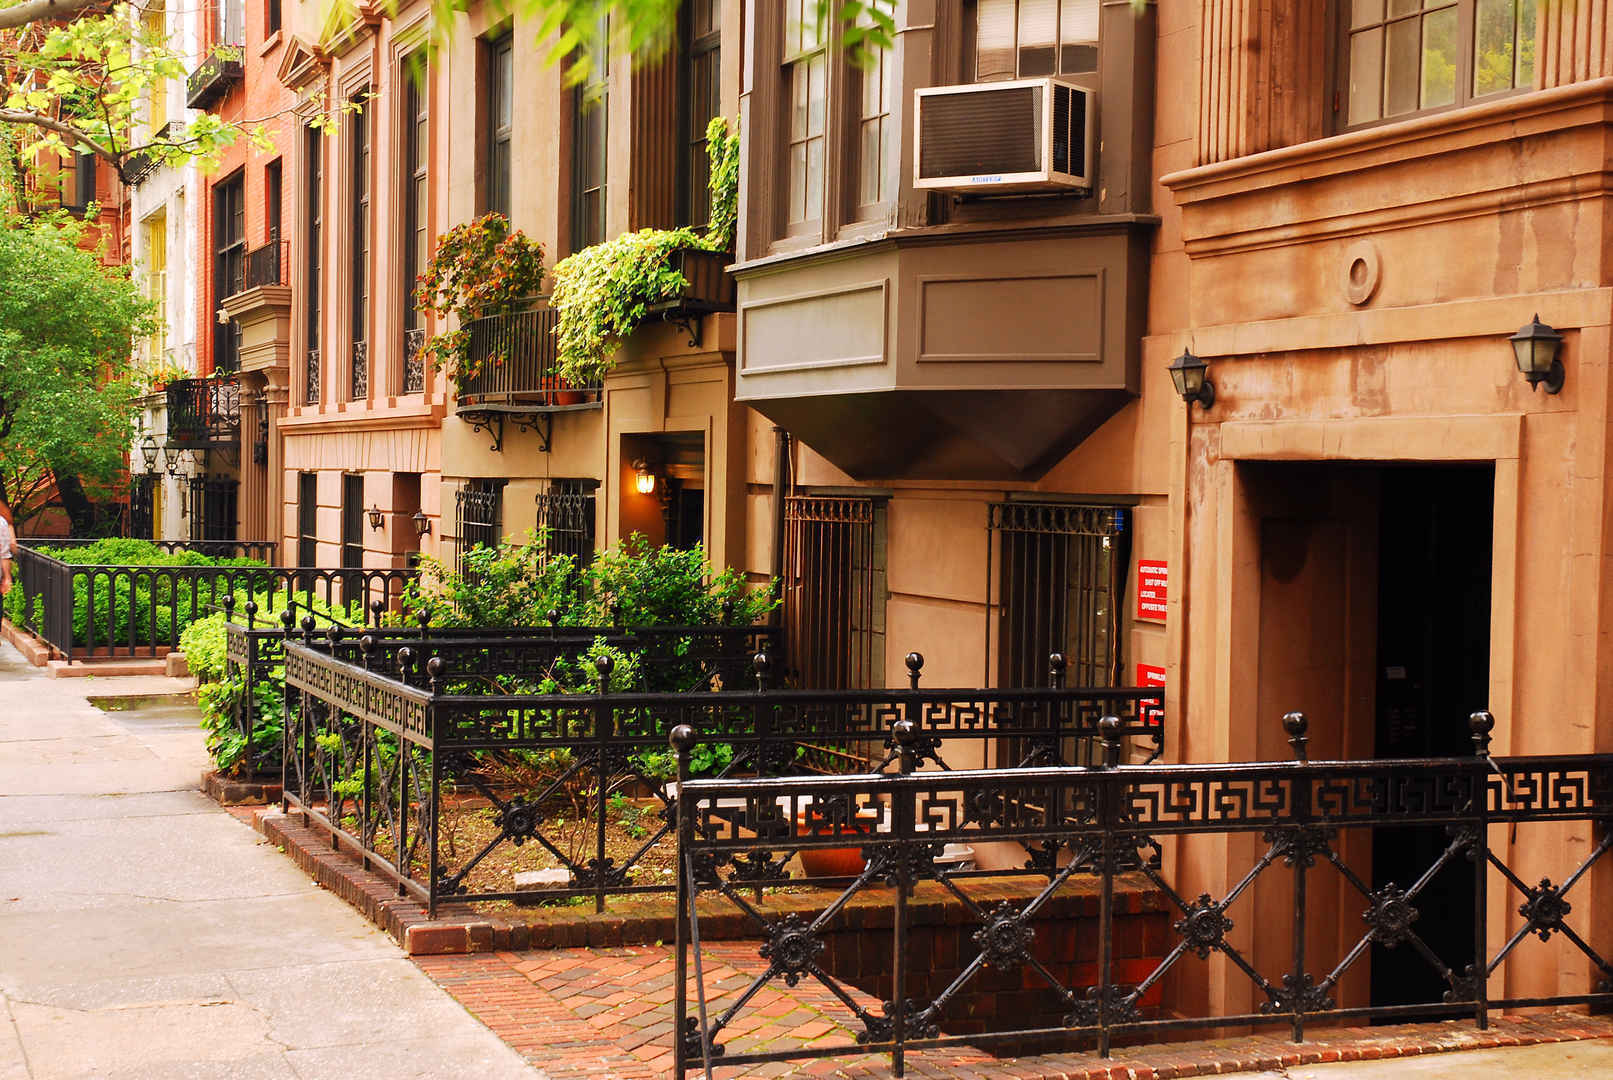 Residential brownstones and townhouses in Gramercy Park New York.